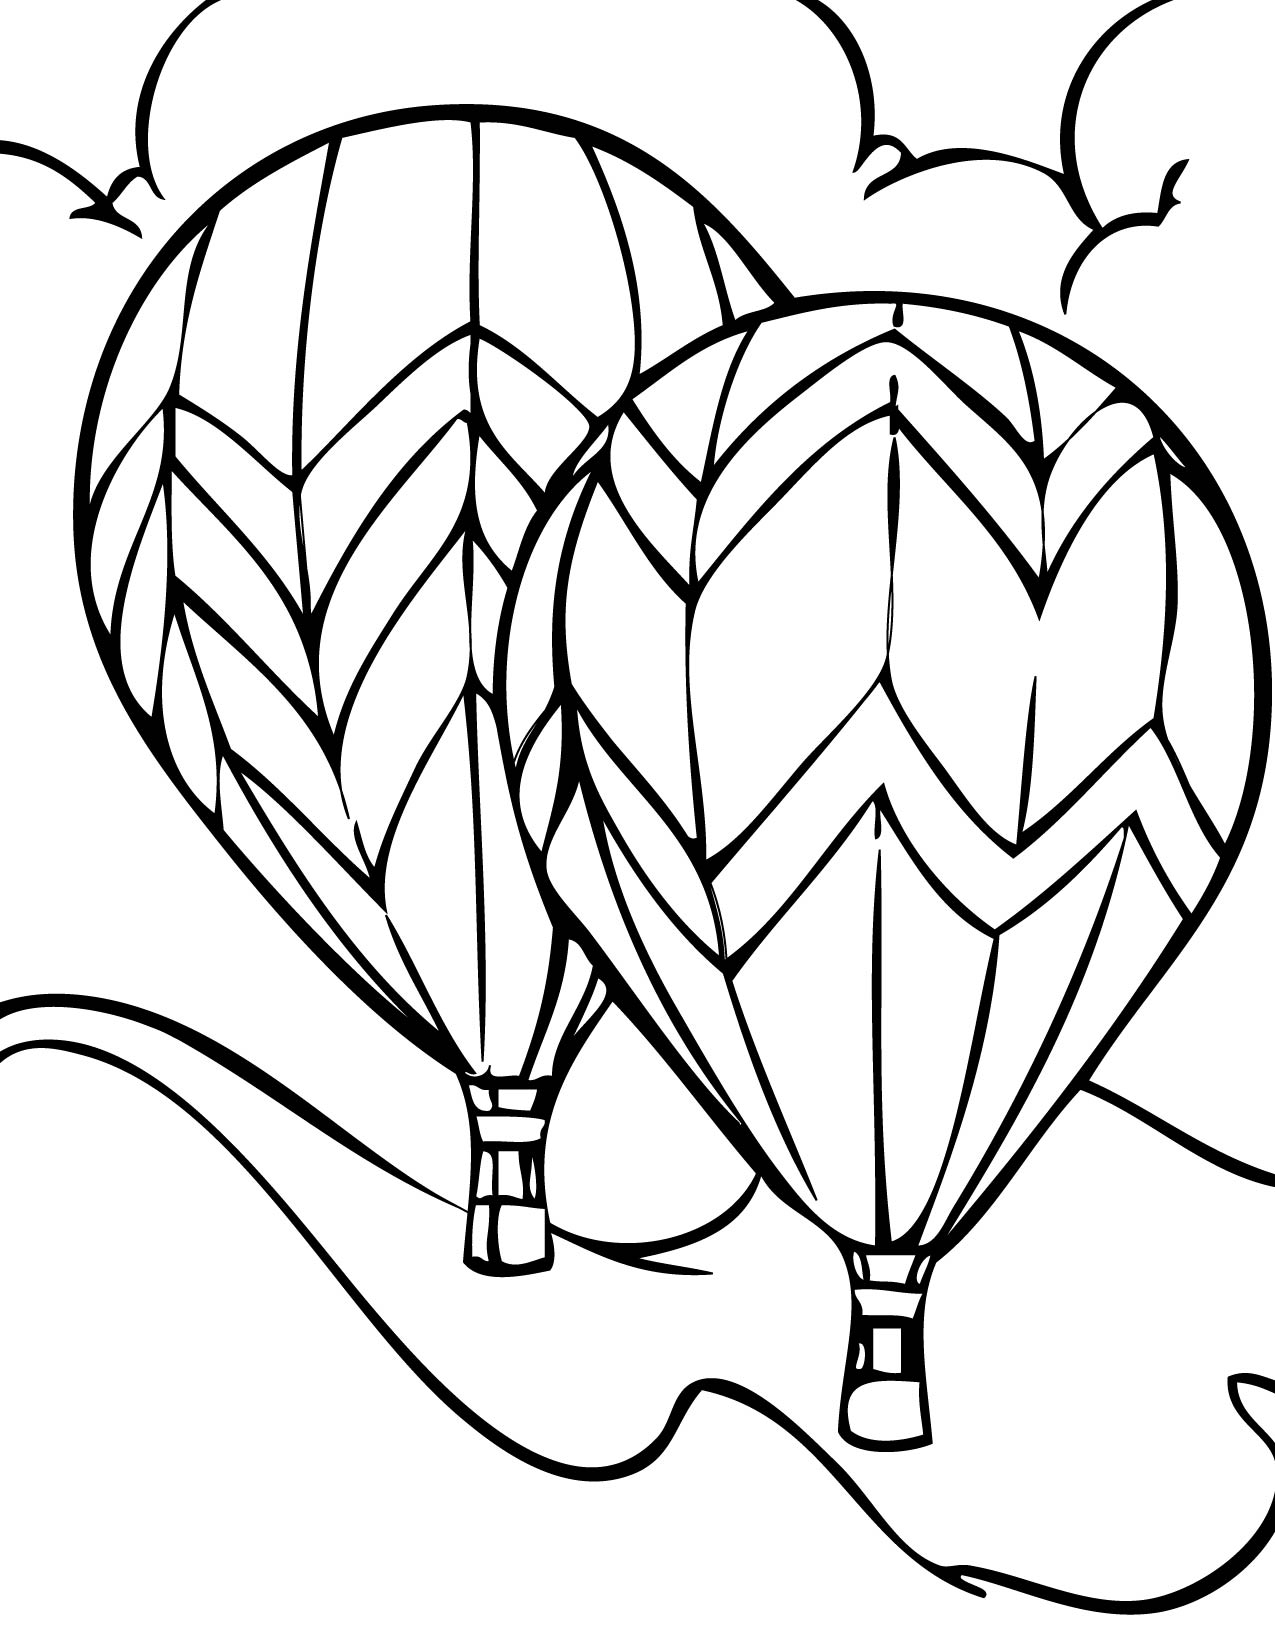 air coloring pages for kids - photo#5